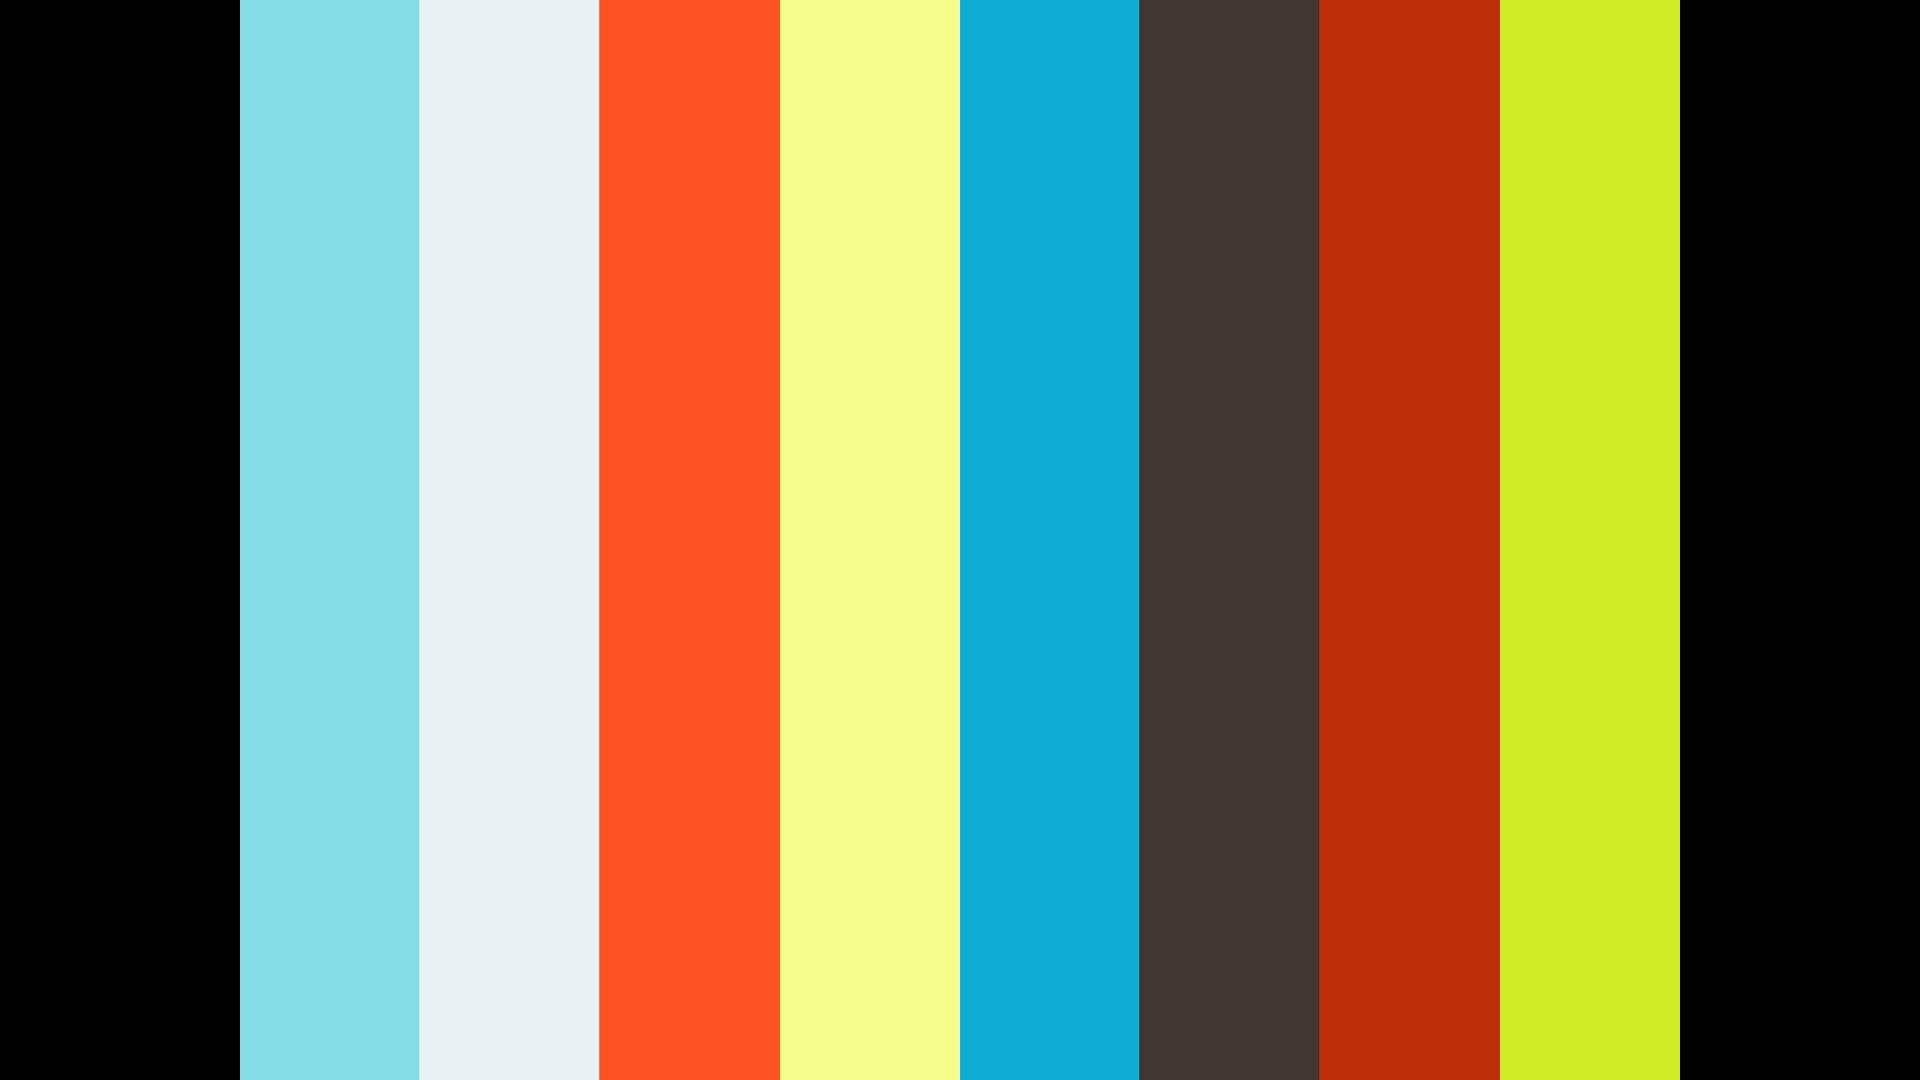 Joffrey Summer of Hip Hop - 30 sec Reel